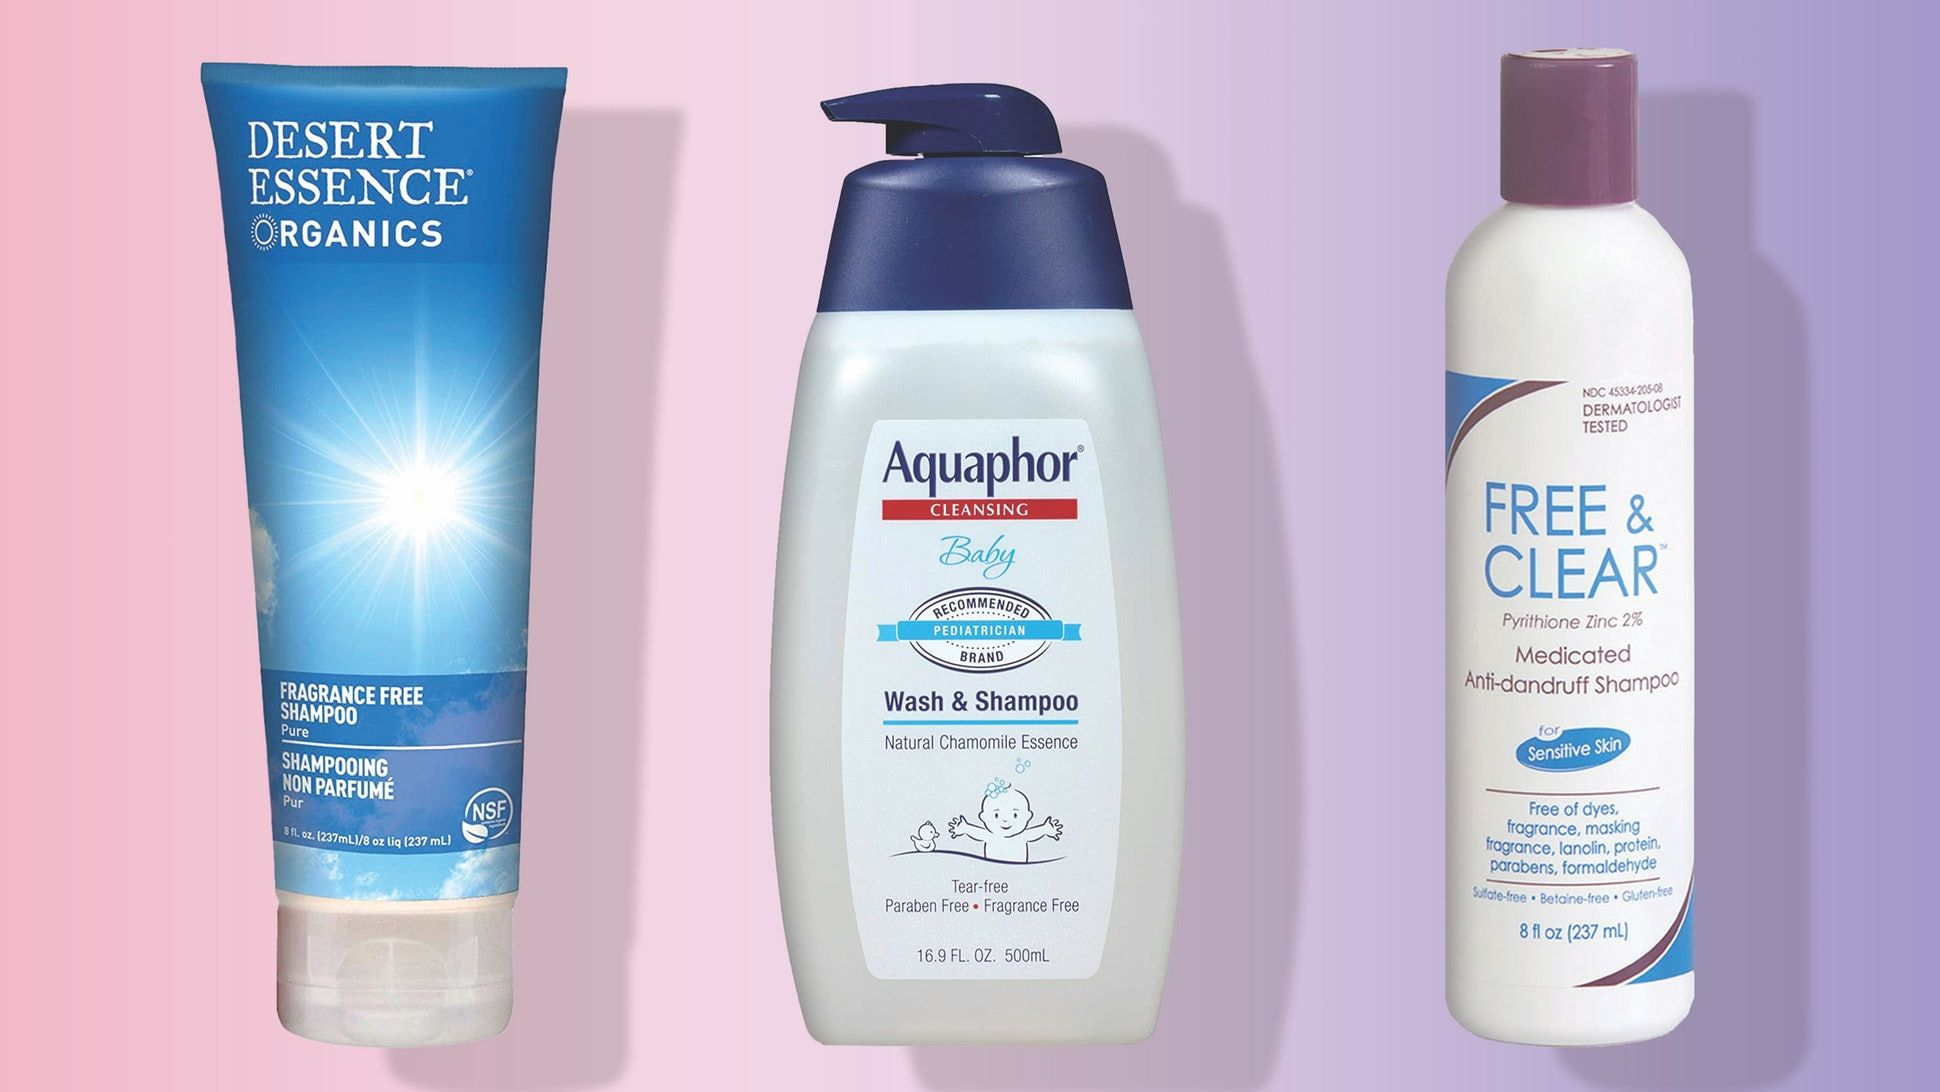 These Are The Best Fragrance Free Shampoos For People With Sensitive Skin Scalps Fragrance Free Shampoo Fragrance Free Products Shampoo Free